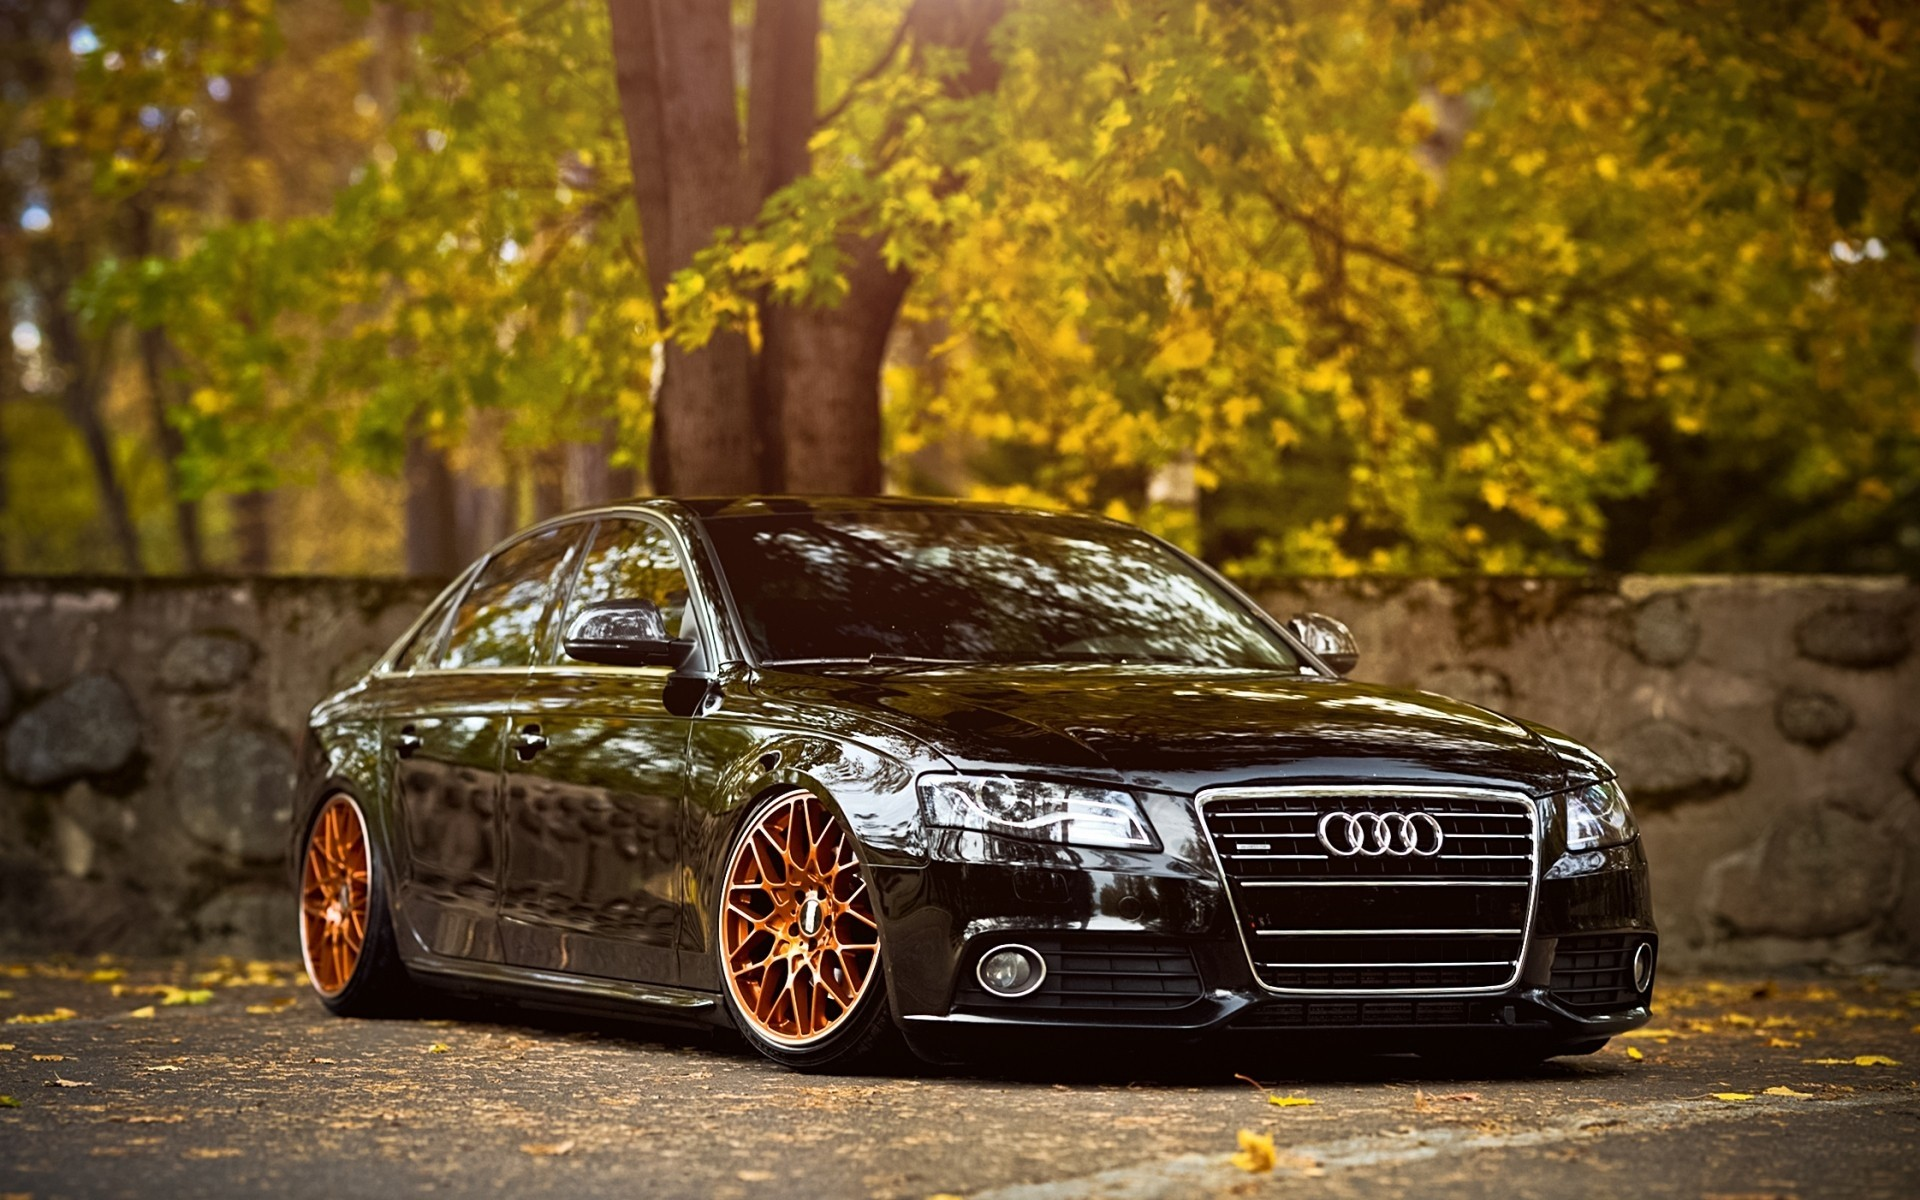 Res: 1920x1200, car audi audi a4 stance wallpapers hd desktop and mobile backgrounds